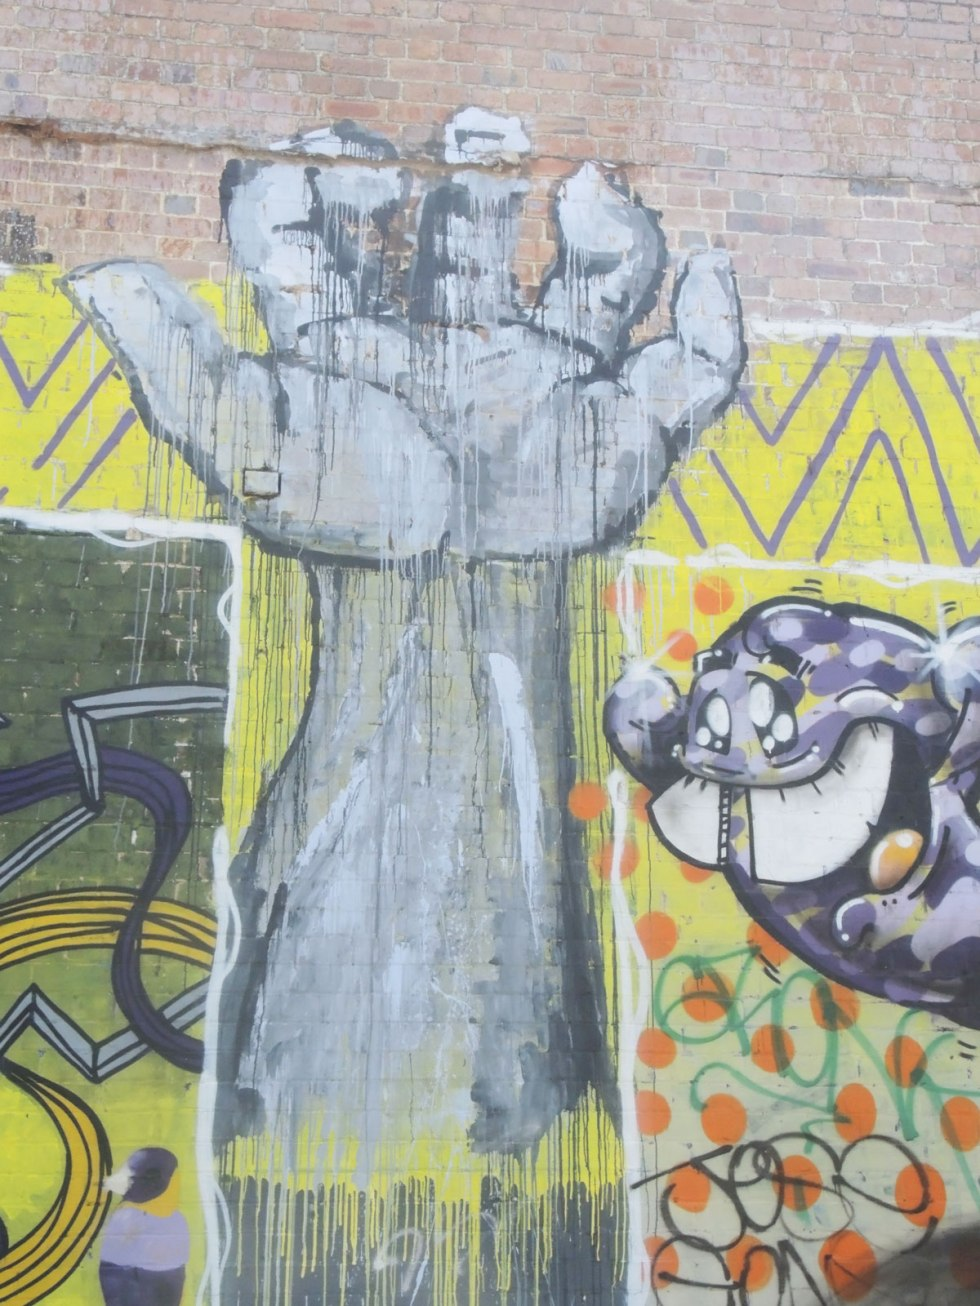 very large street art painting of an upstretched arm and open hand, in grey